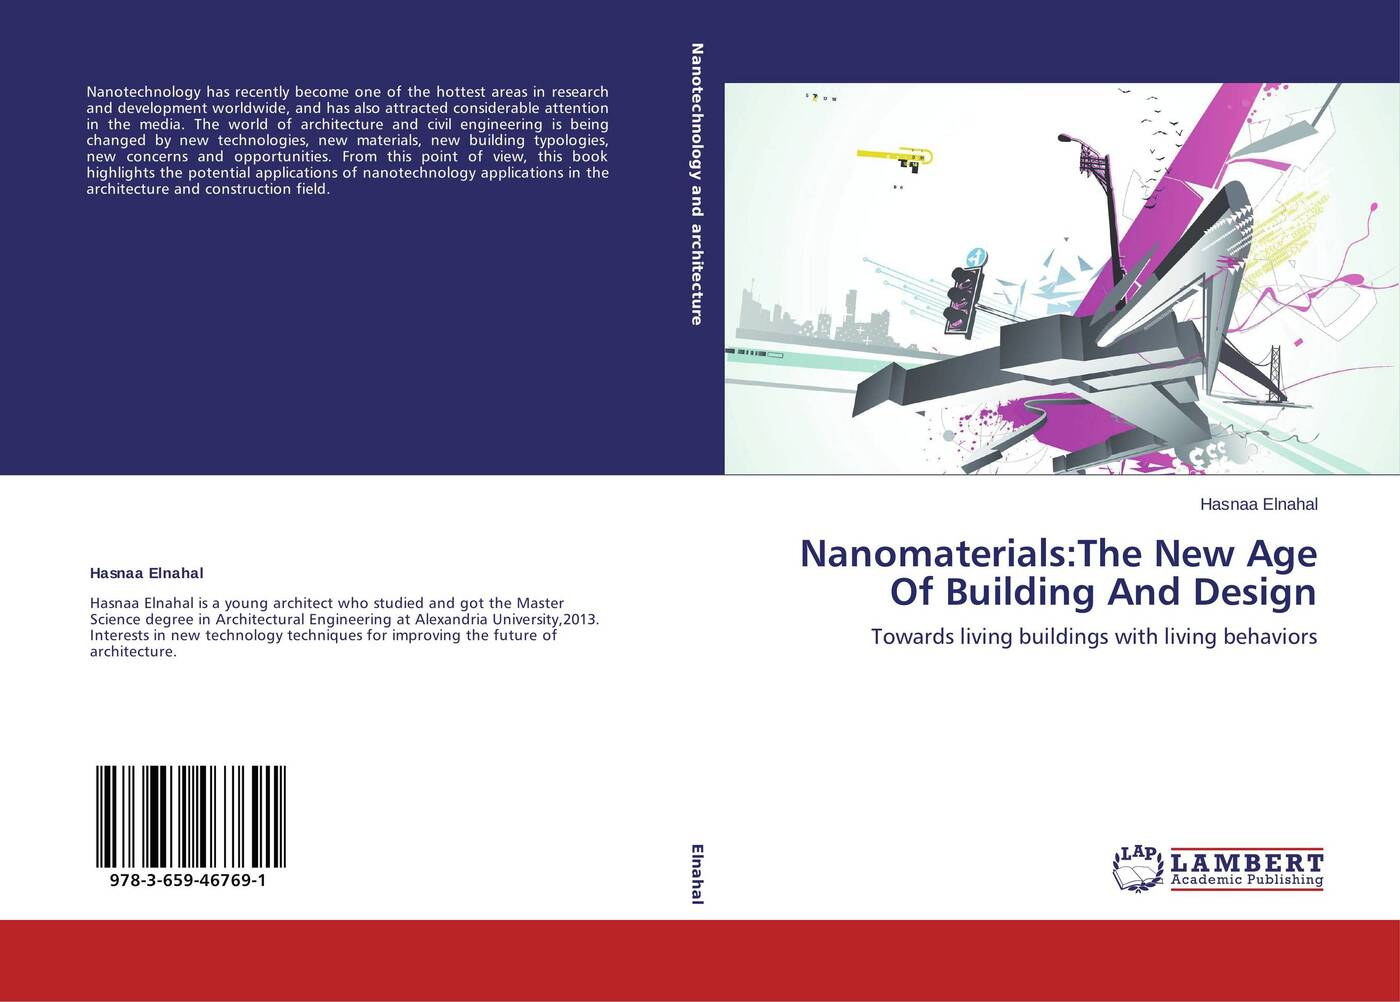 Hasnaa Elnahal Nanomaterials:The New Age Of Building And Design